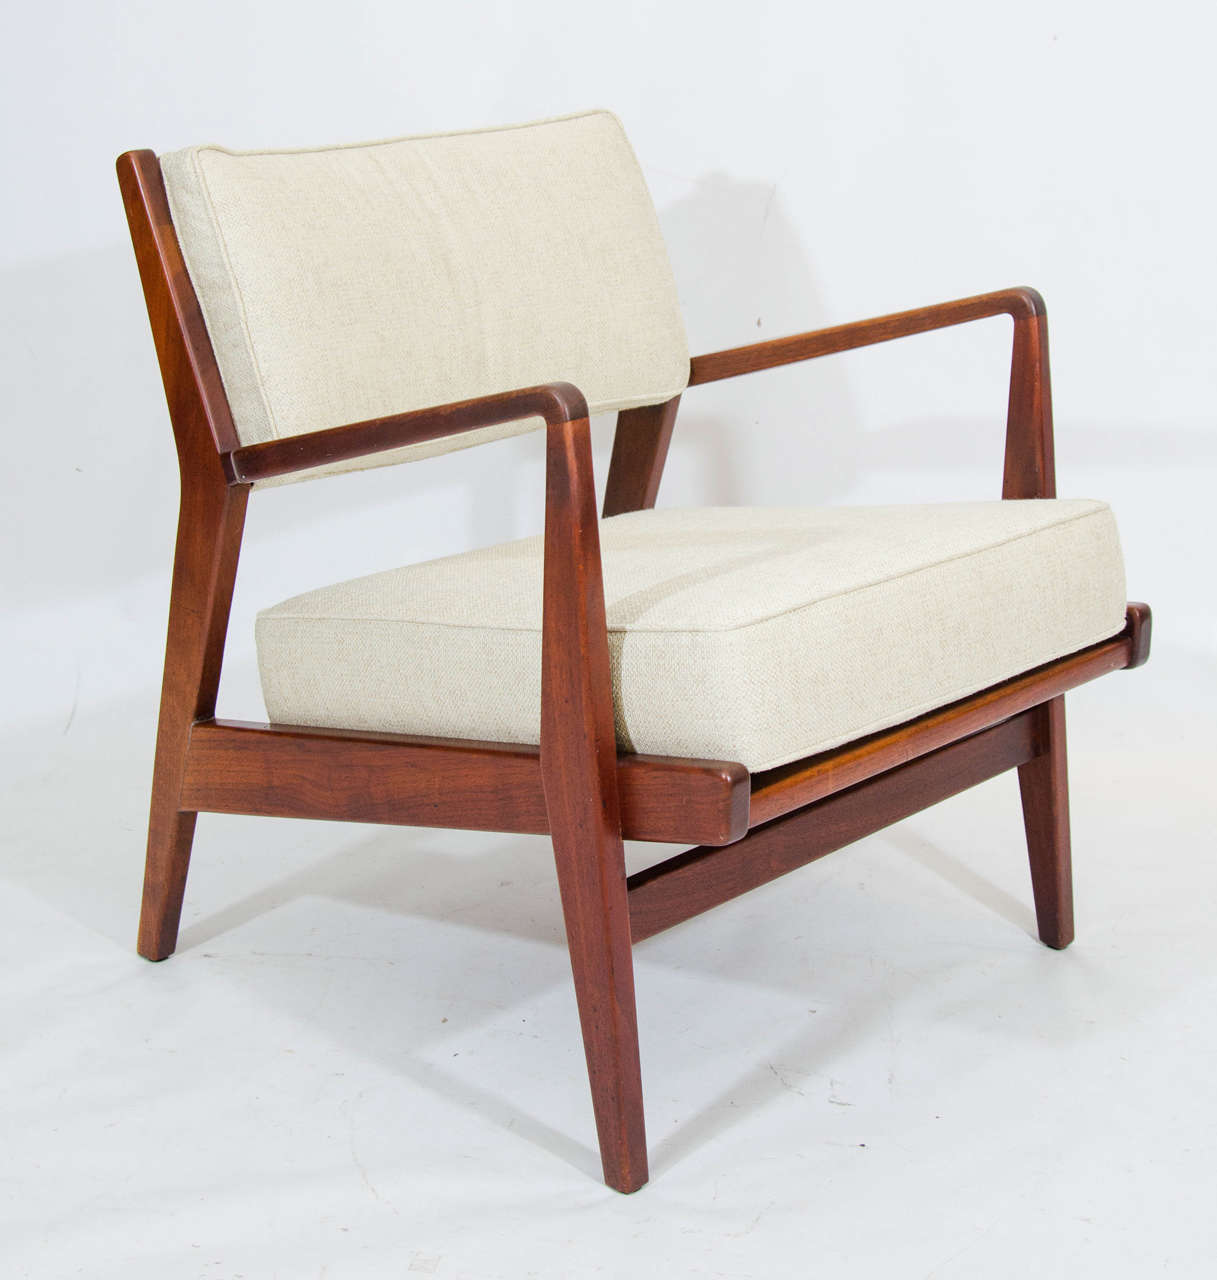 Jens risom lounge chair and ottoman at 1stdibs Iconic chair and ottoman